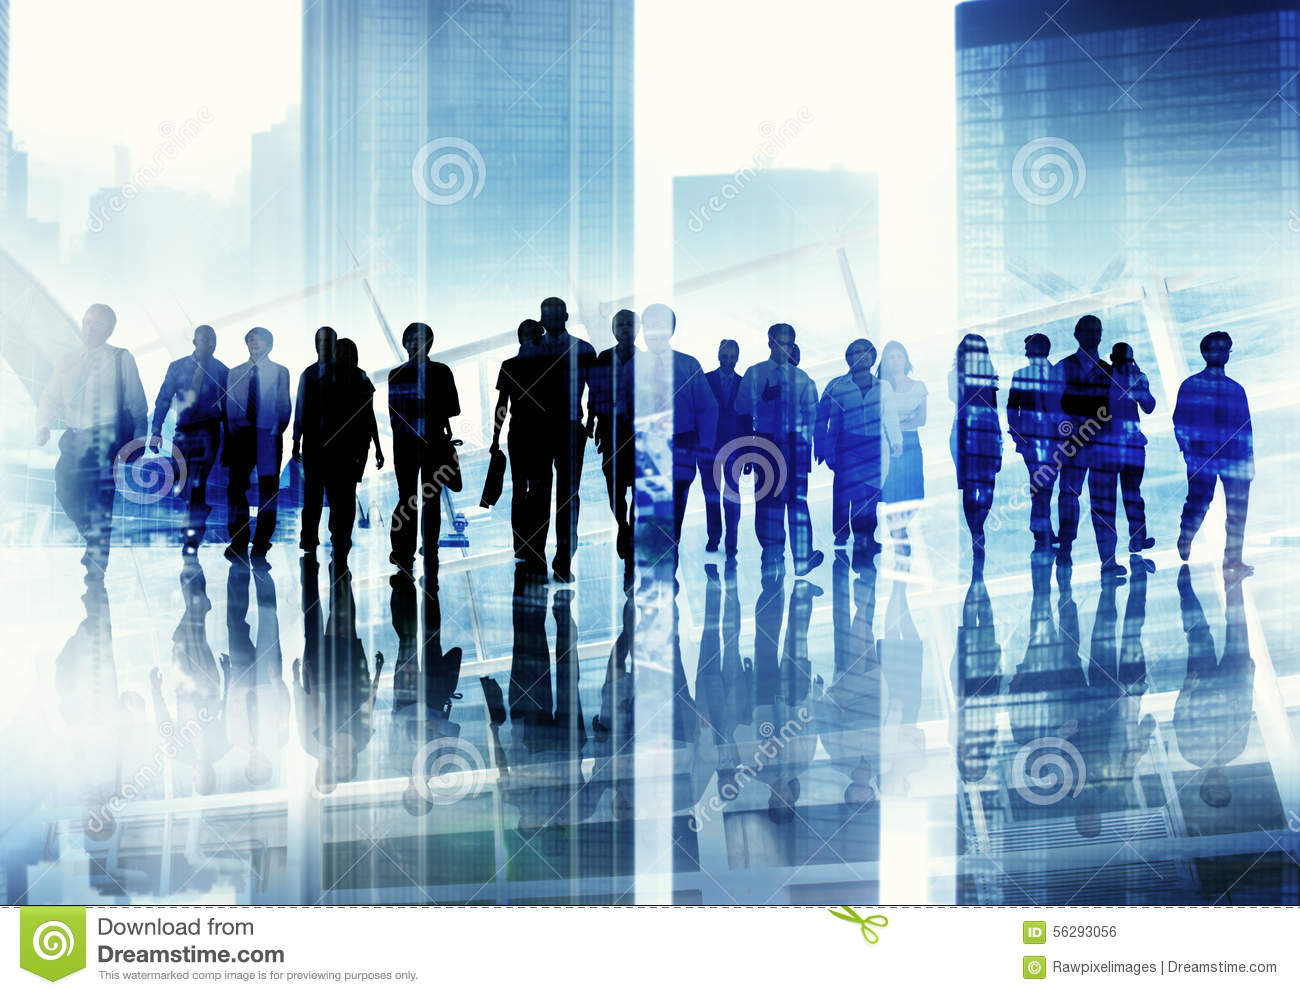 Royalty Free Stock Image: Group of Business People Walking ...